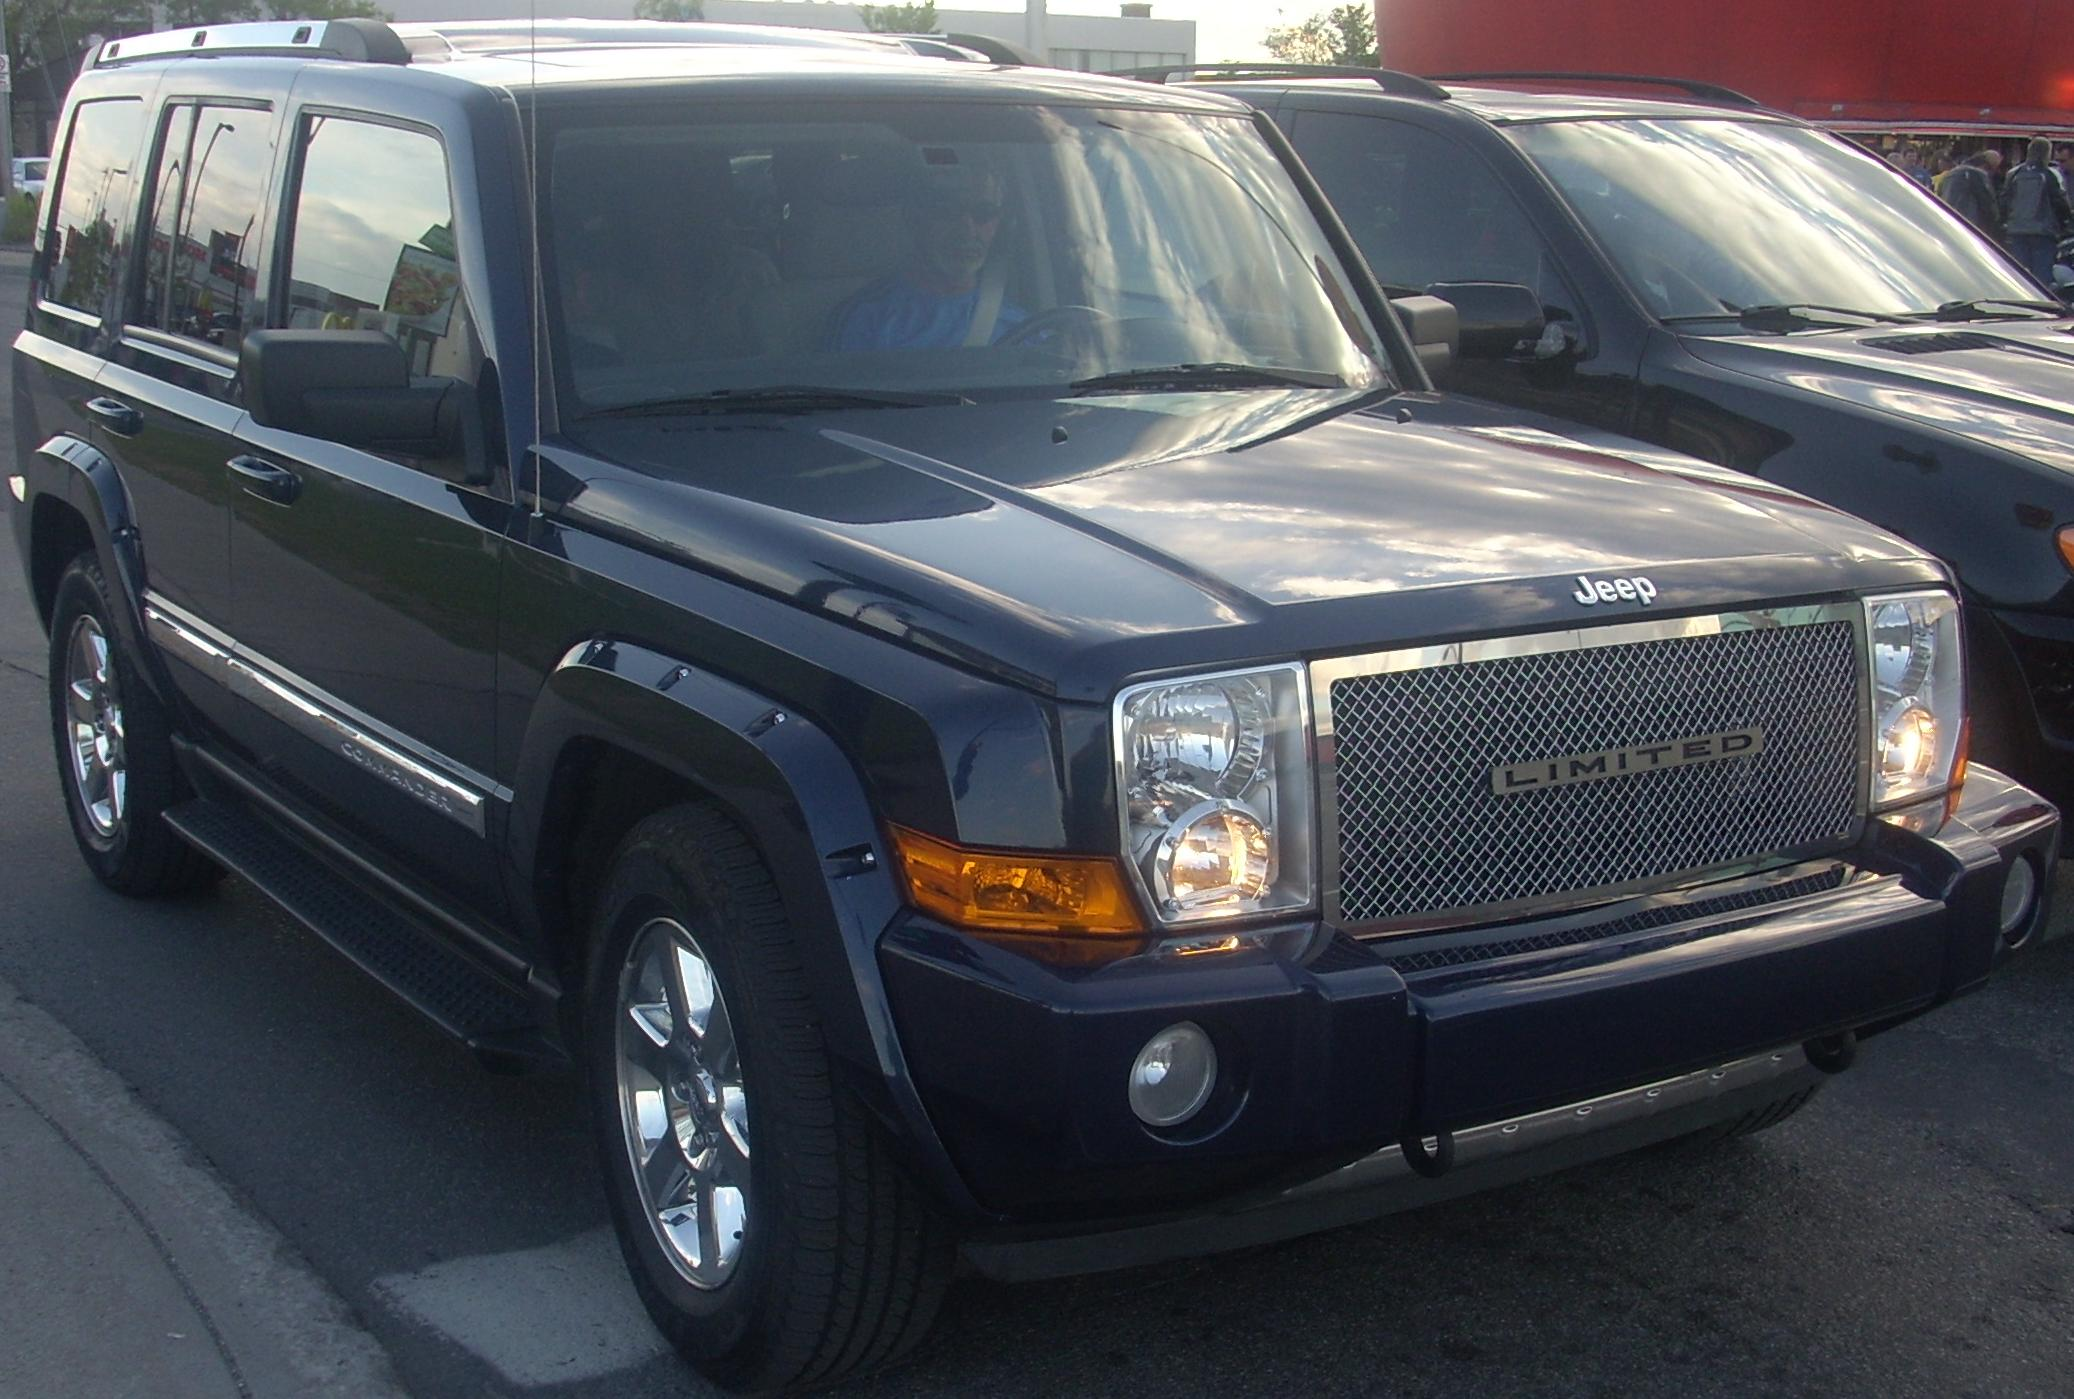 jeep commander related images,start 350 - weili automotive network